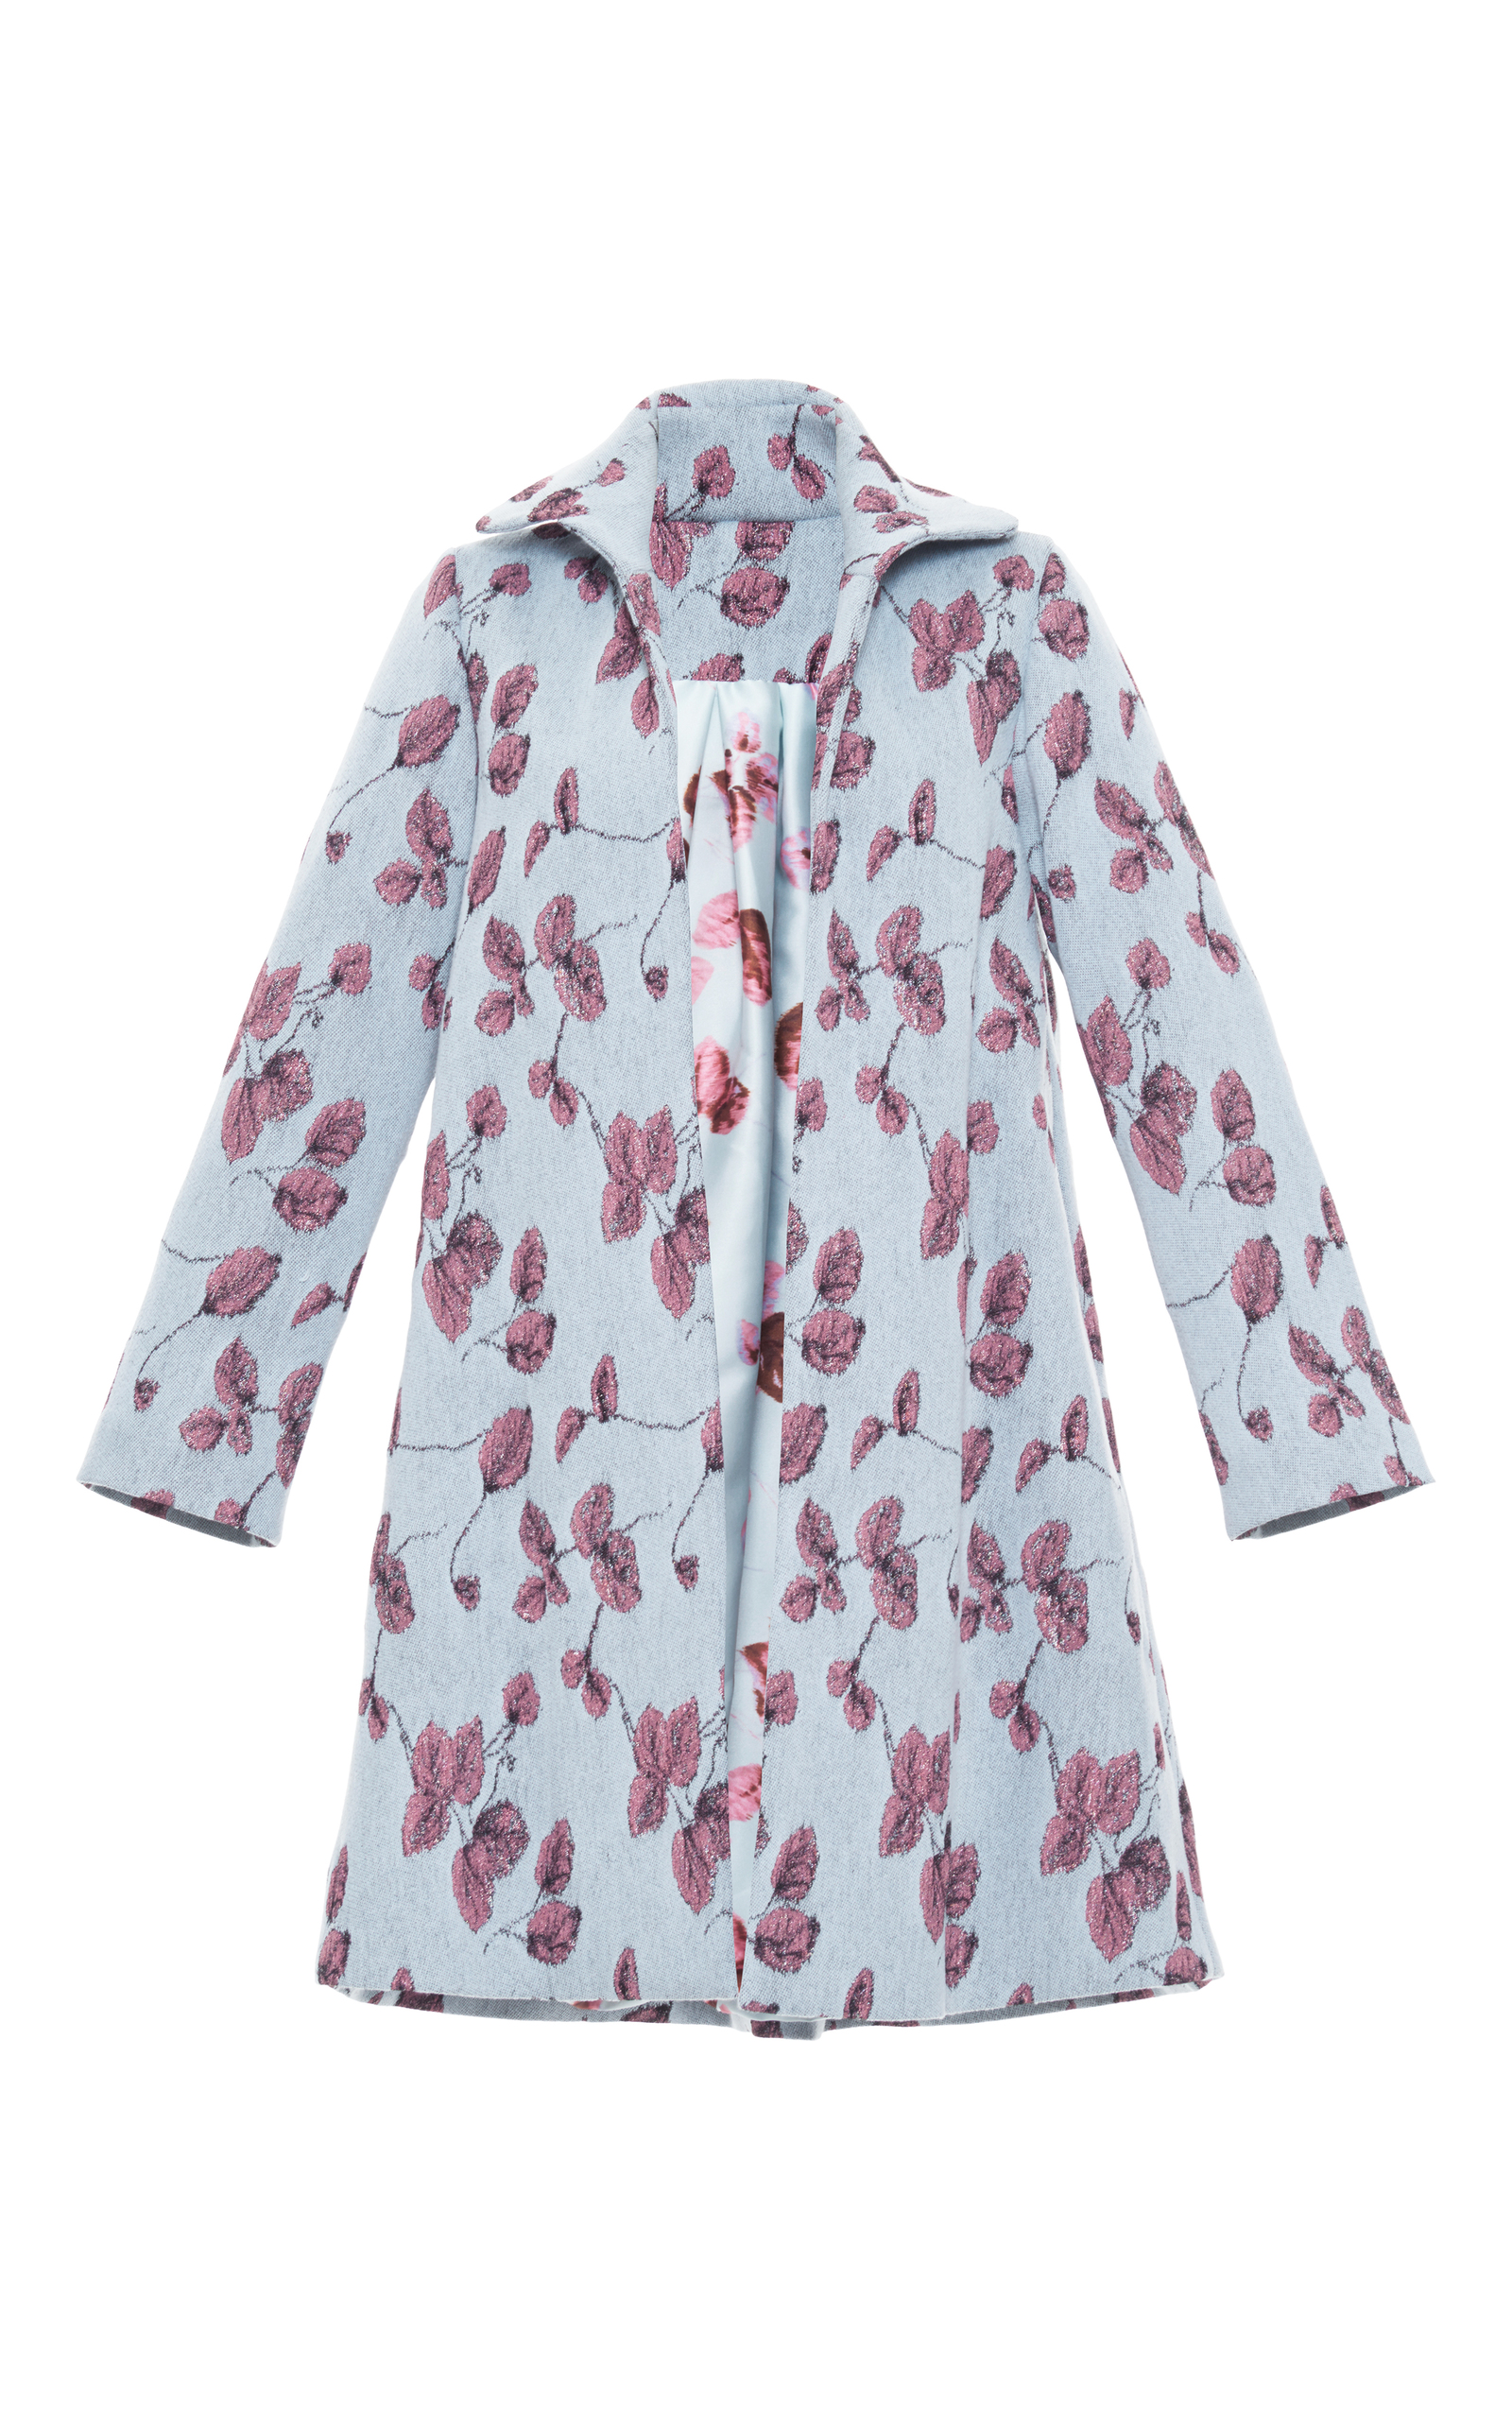 Mohair floral embroidered coat by luisa beccaria moda